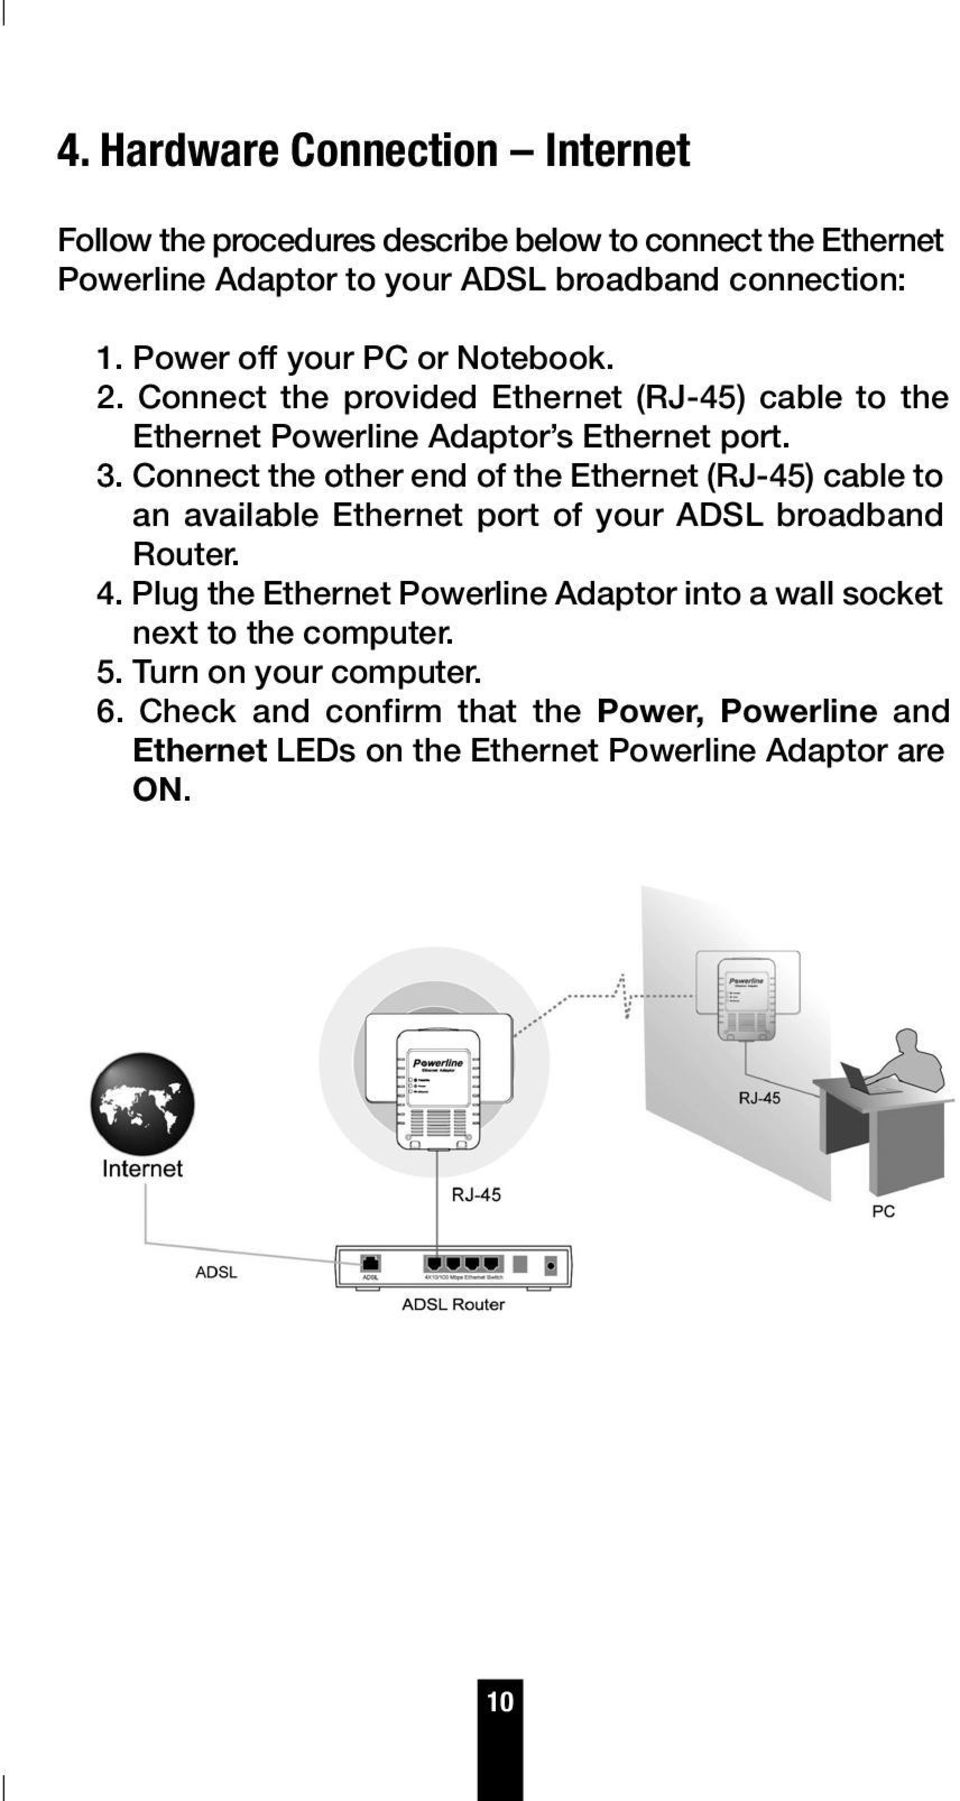 Connect the other end of the Ethernet (RJ-45) cable to an available Ethernet port of your ADSL broadband Router. 4.